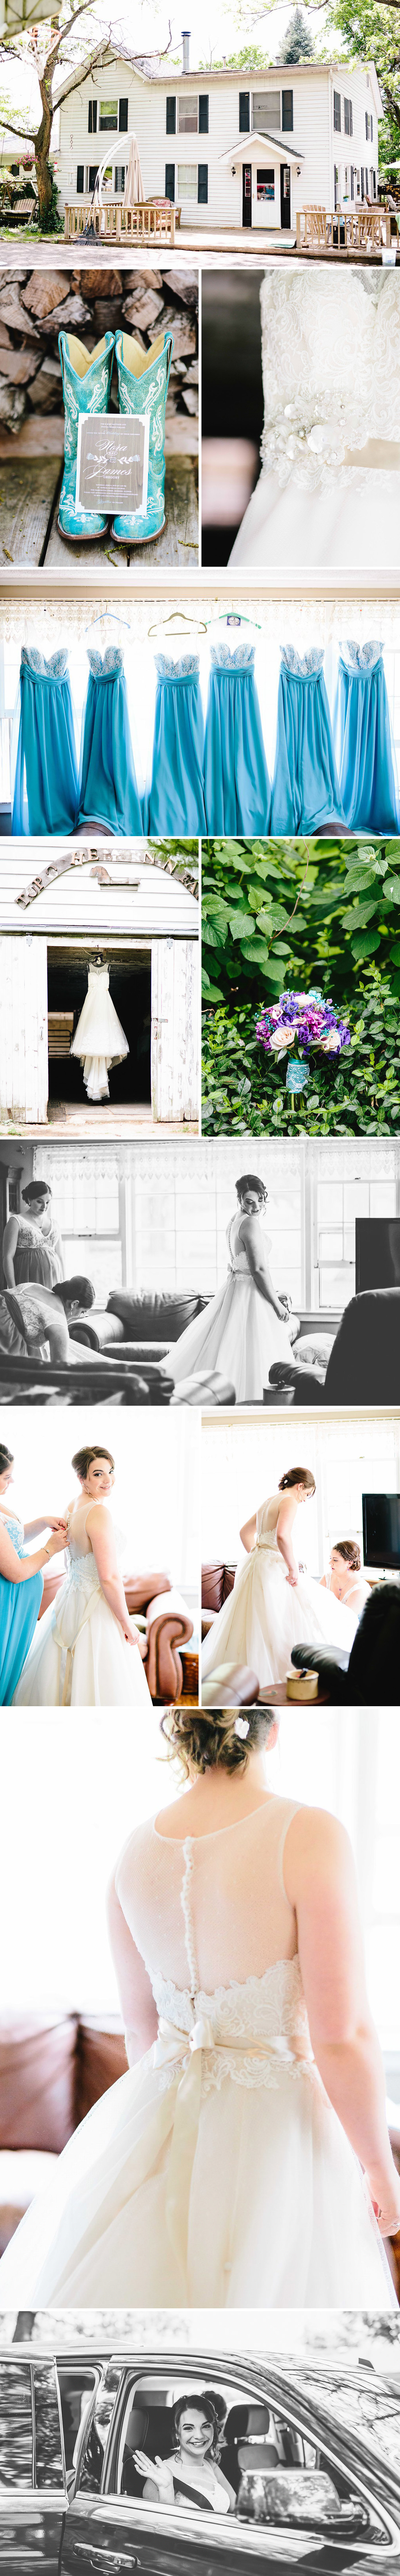 chicago-fine-art-wedding-photography-furlano1